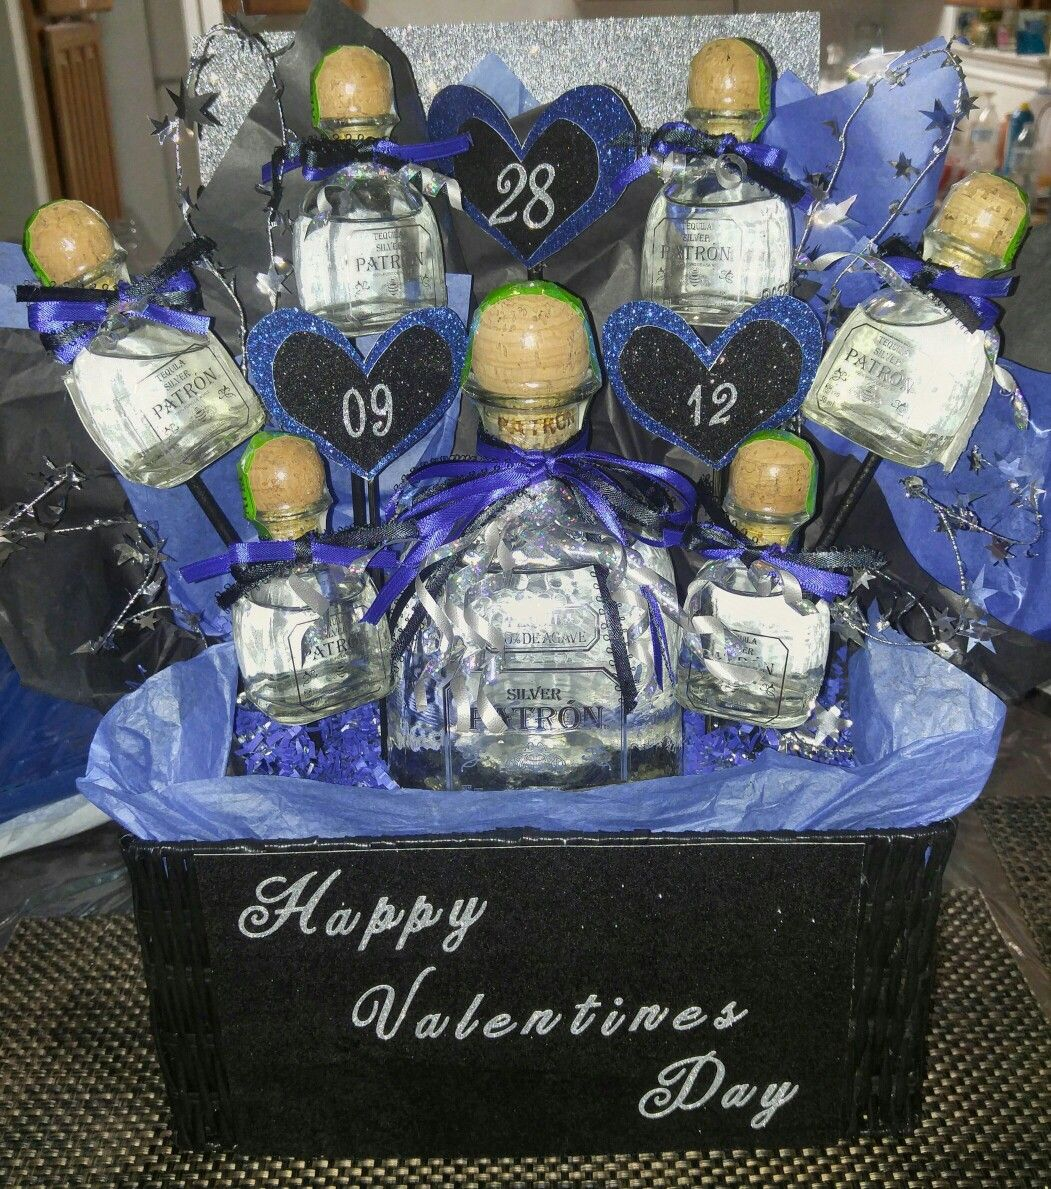 #patron #tequila #blue #black #basket #valentines #gift for him